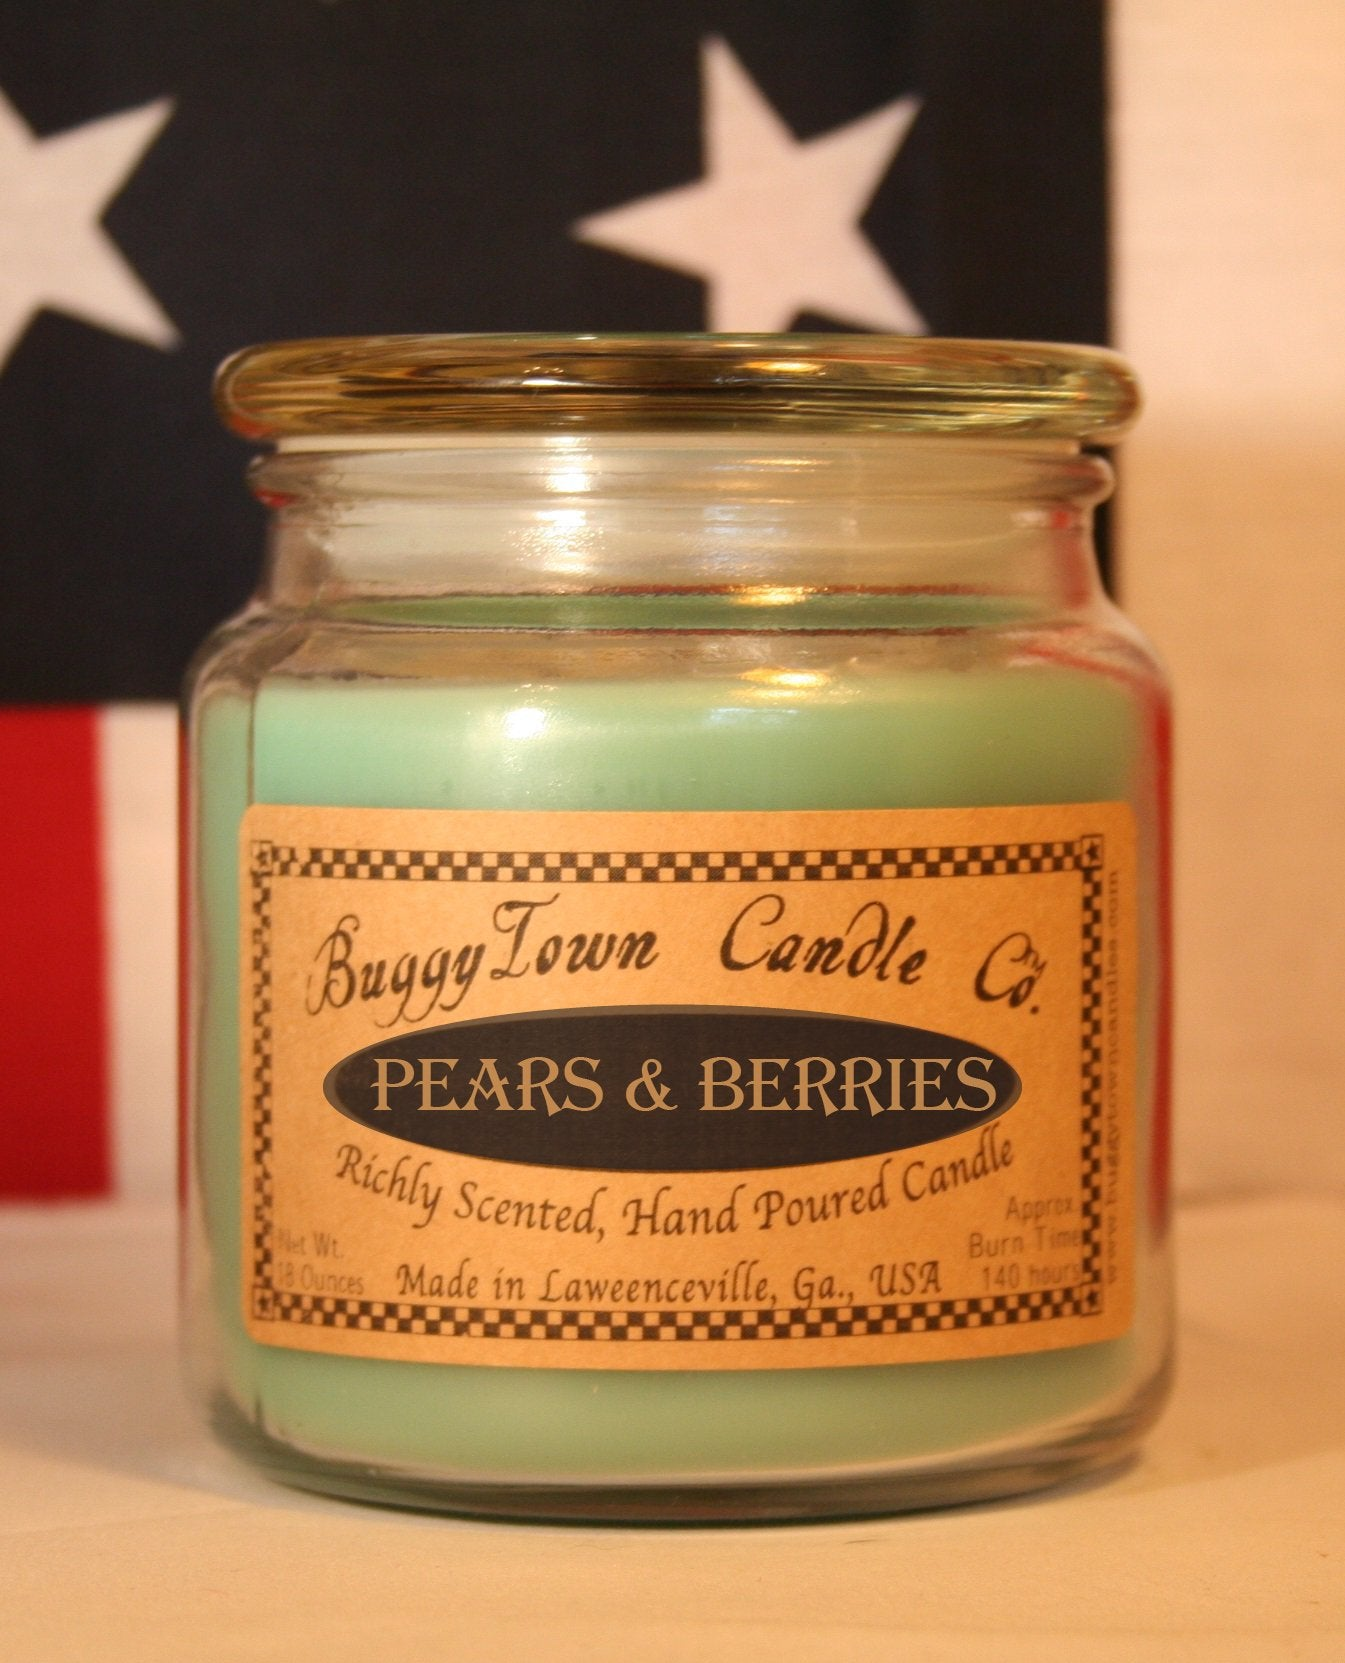 Pears & Berries Candles